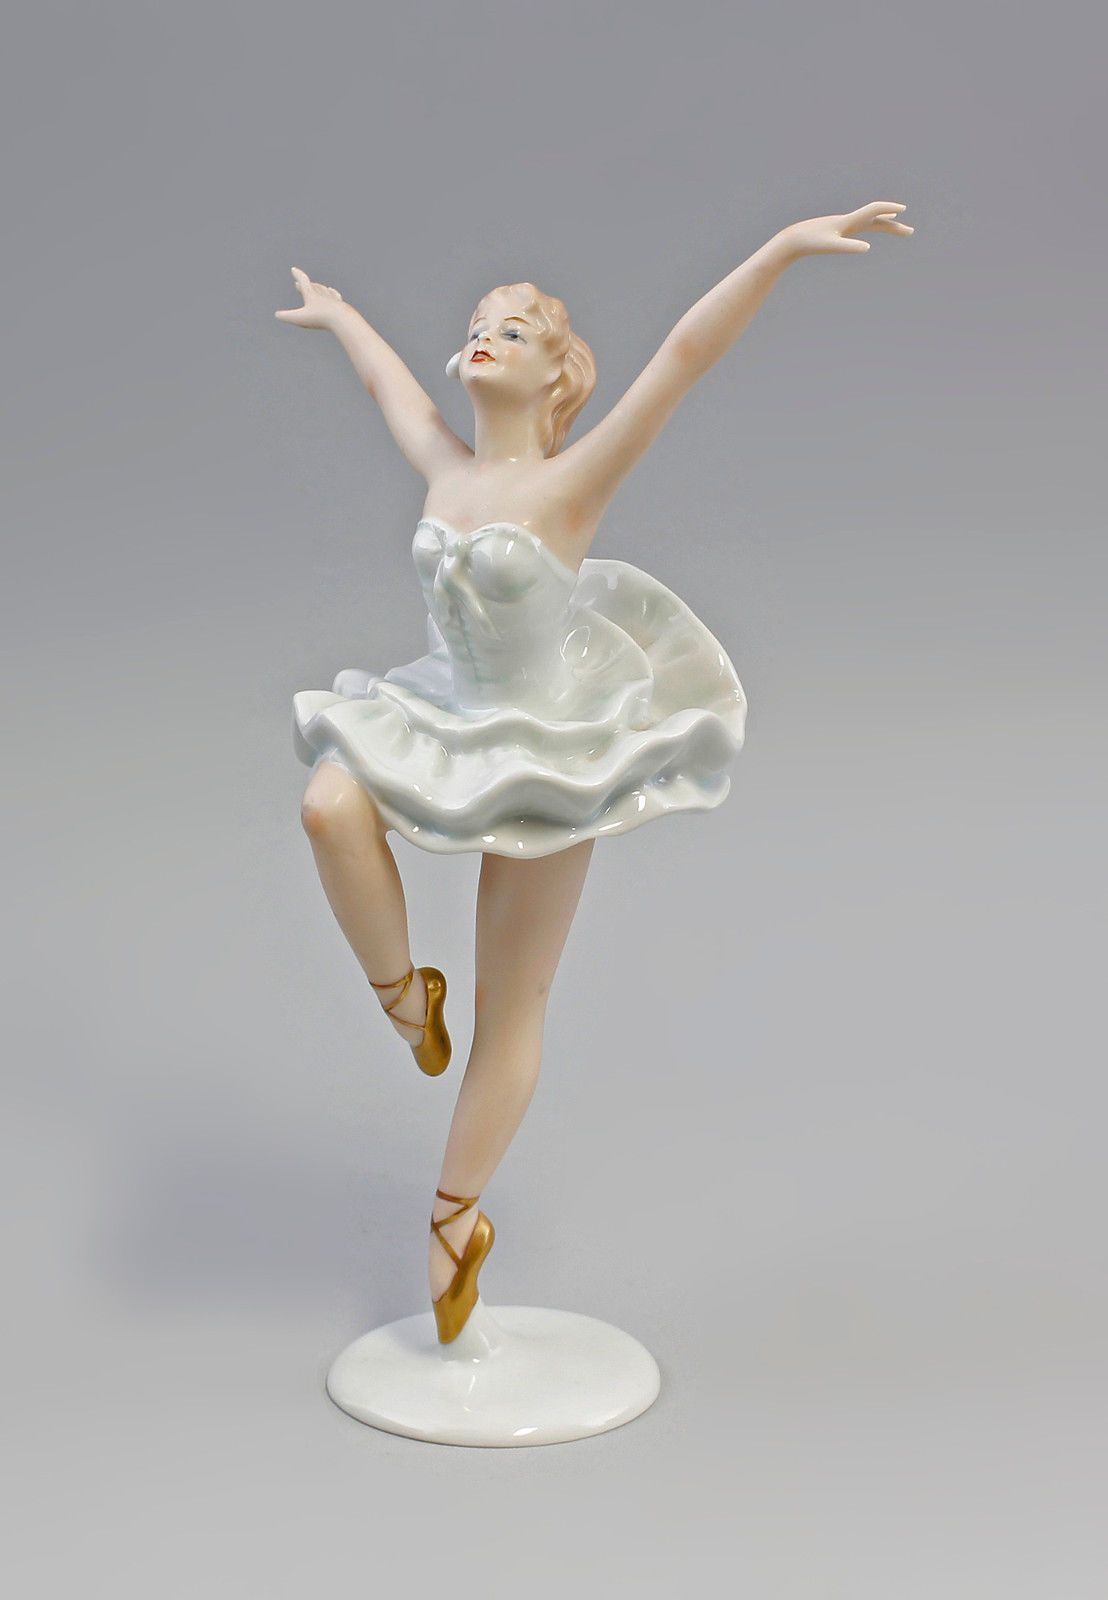 porcelaine personnage ballerine danseuse ballet danse wallendorf 7740025 ebay figurines. Black Bedroom Furniture Sets. Home Design Ideas